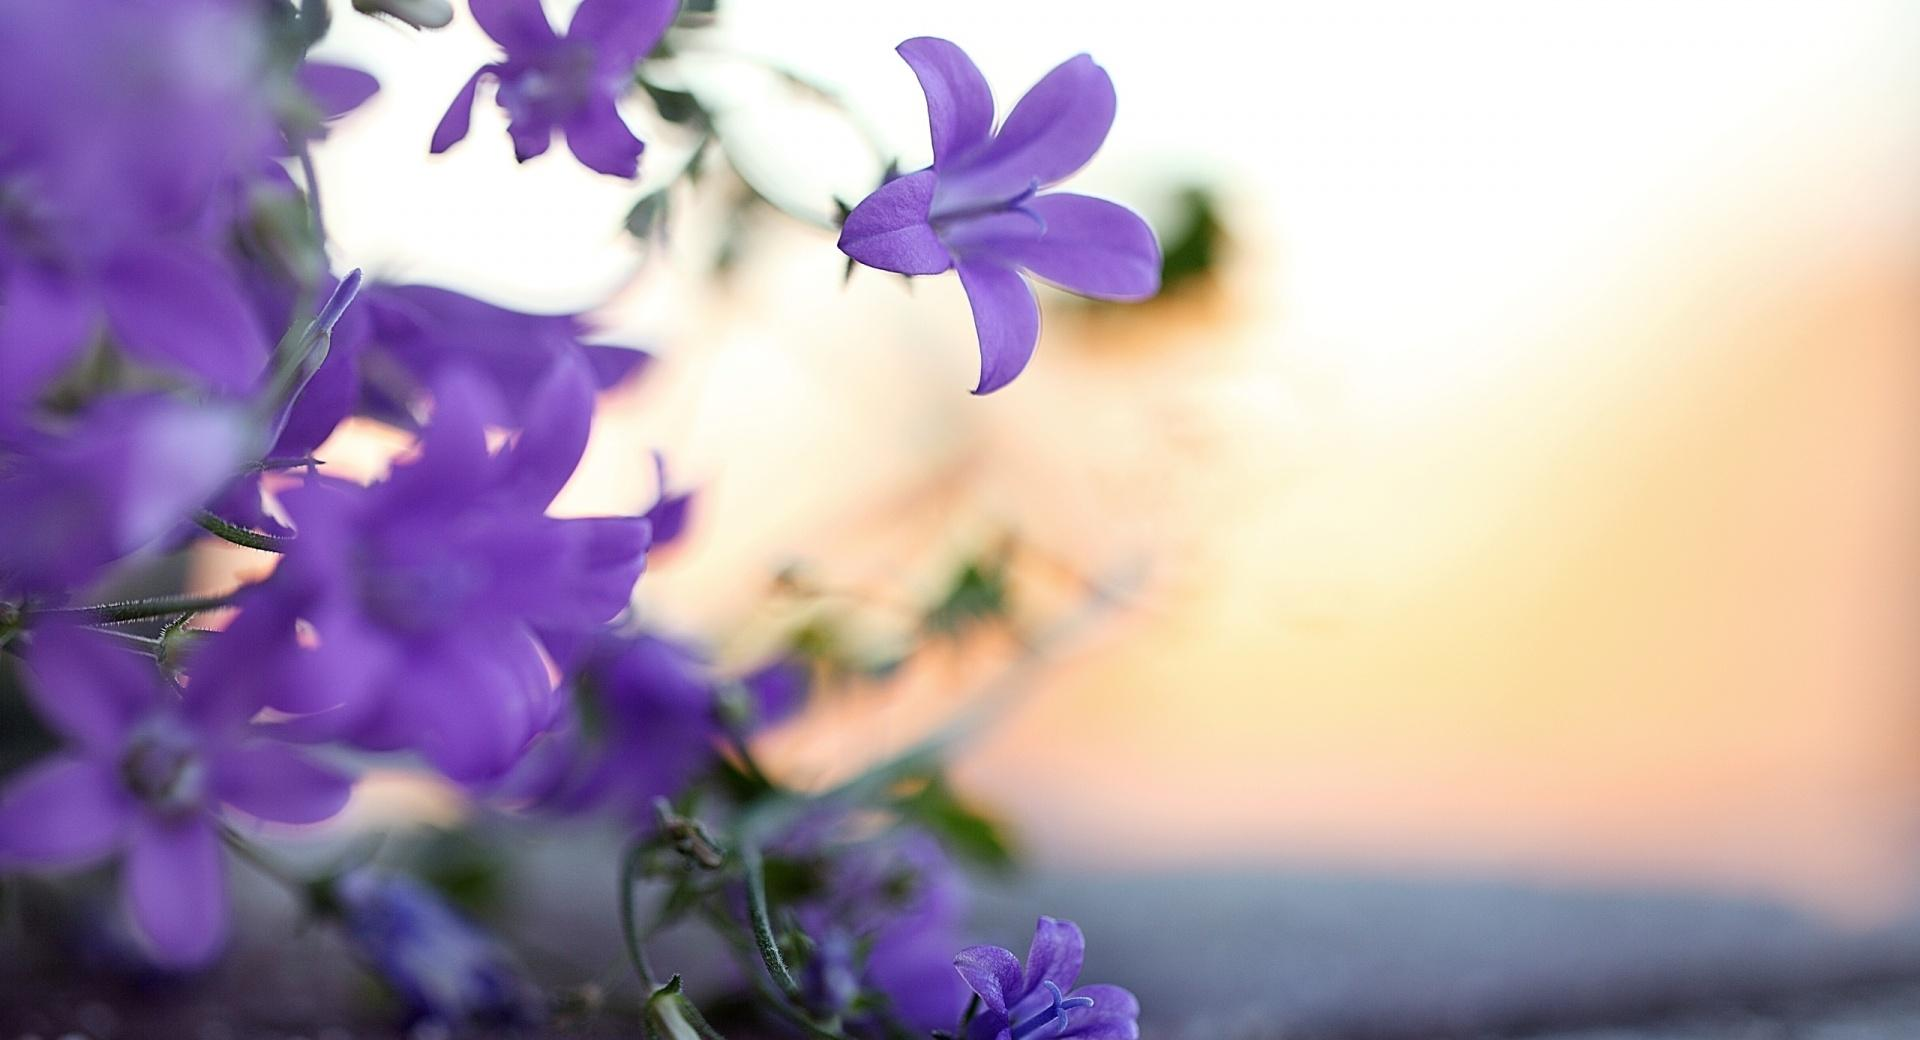 Small Violet Flowers wallpapers HD quality